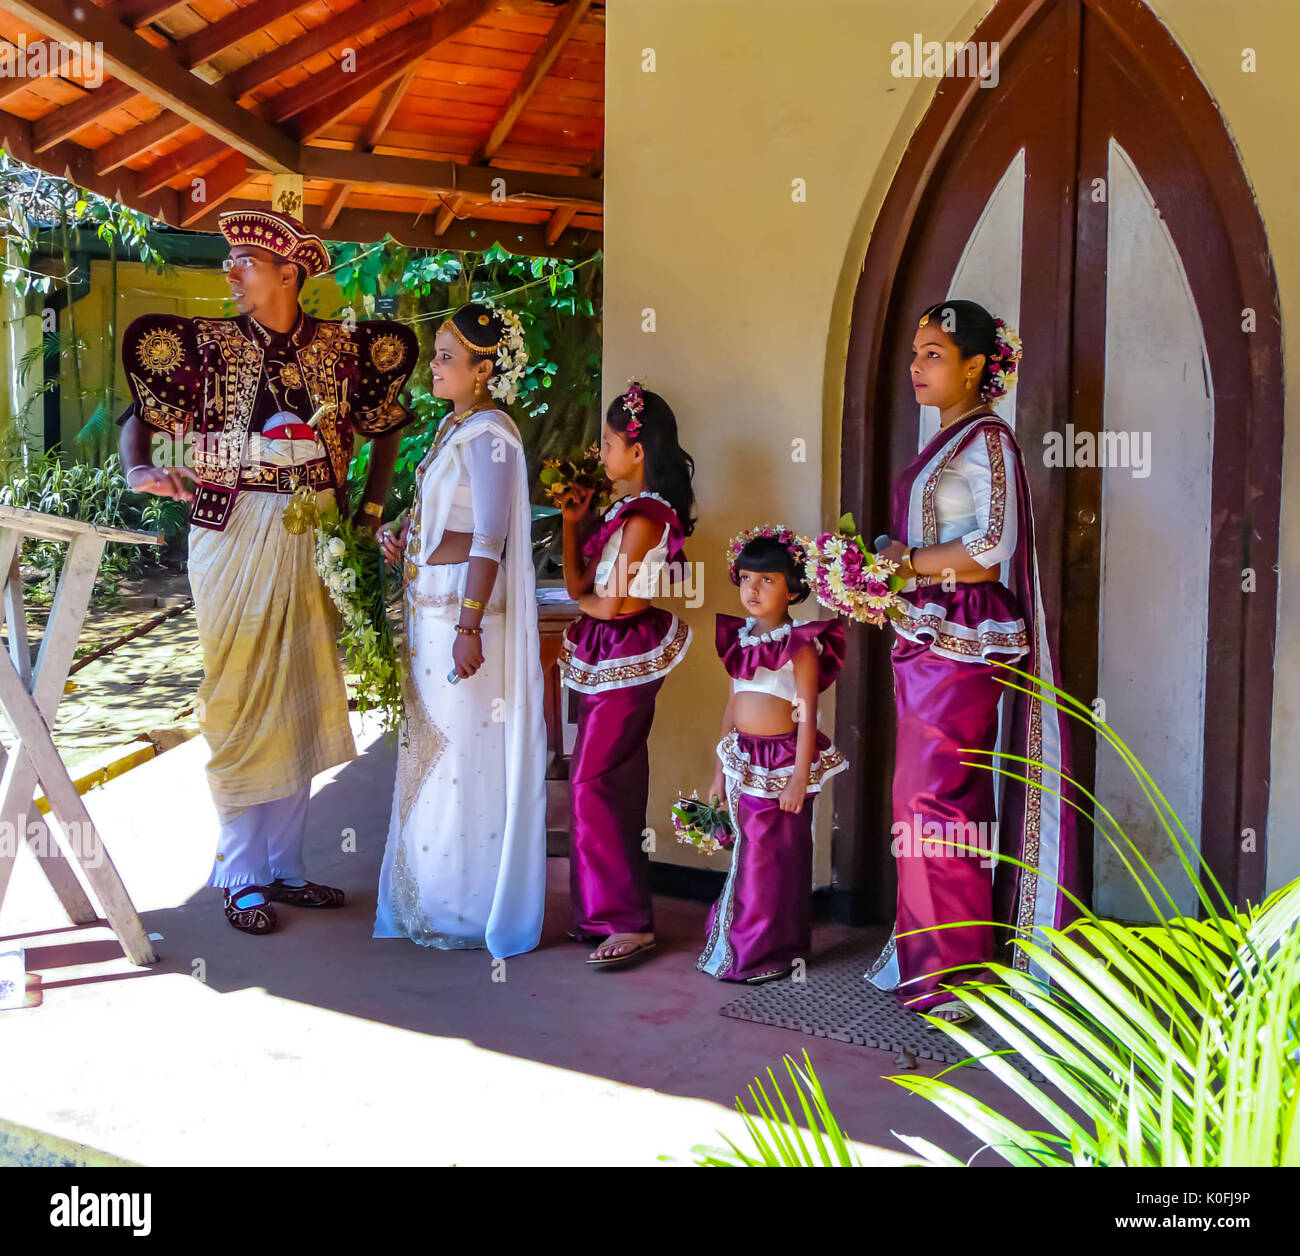 Sri Lankan Wedding, the Groom, Bride and Bridesmaids in traditional ...